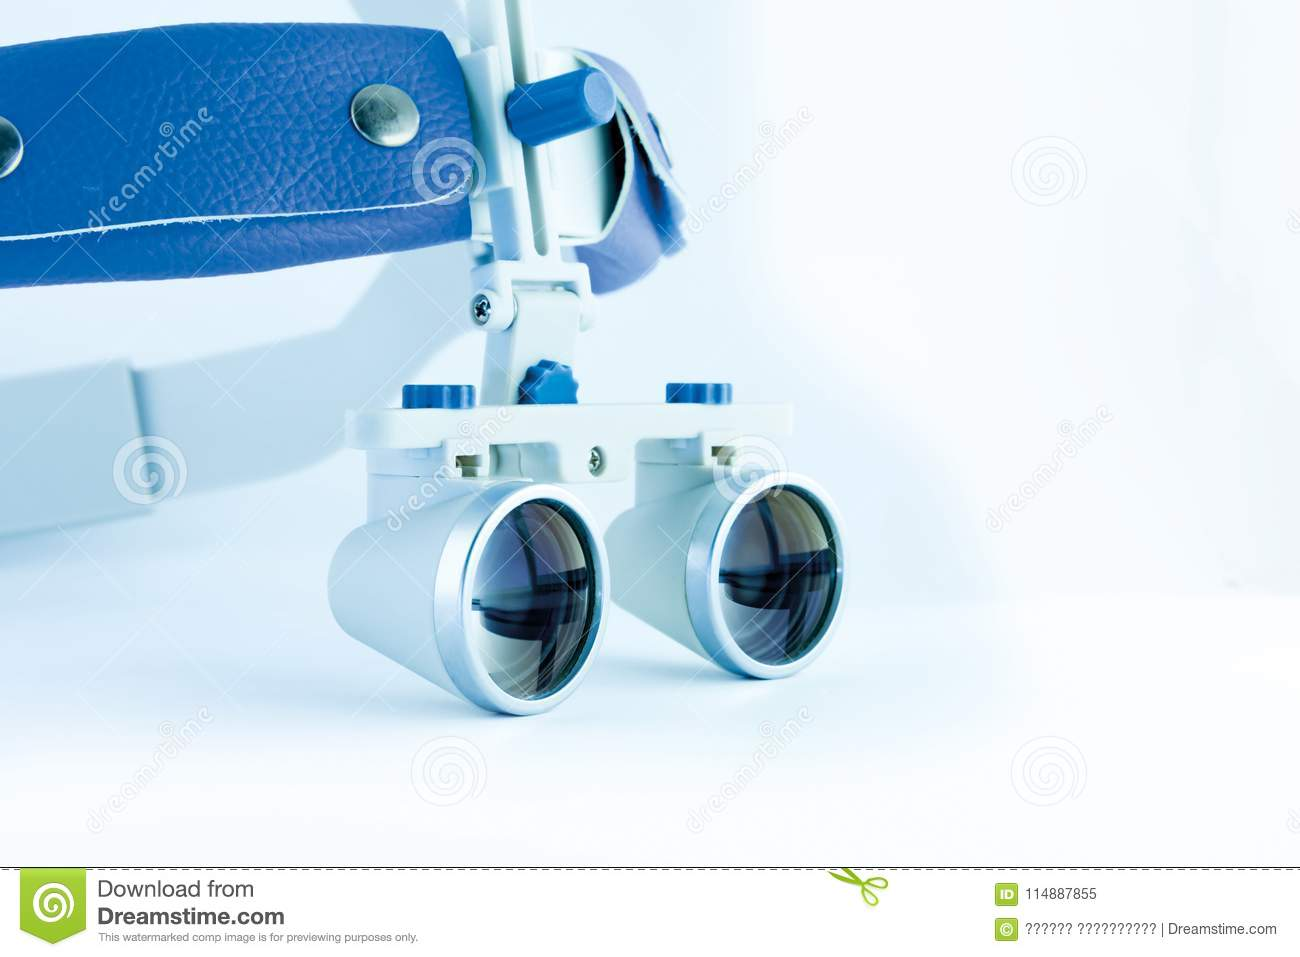 443daed68d42 Magnifying binocular glasses close-up. Dental instruments in the clinic.  The concept of new technologies in dental practice